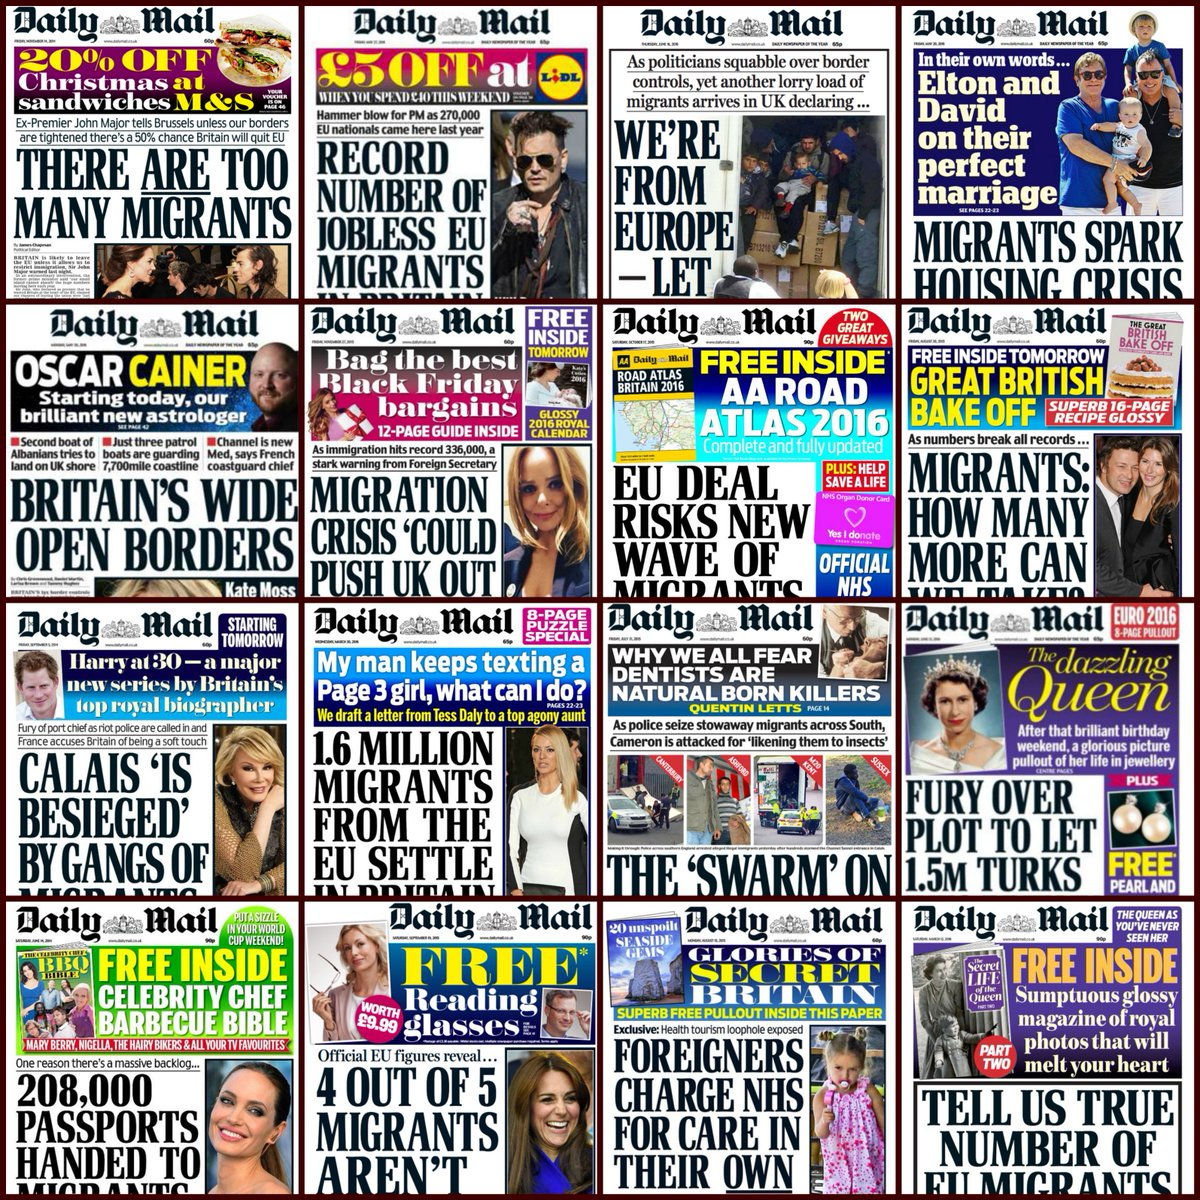 The Daily Mail reports there's been a spike in racist hate crime post-#Brexit  For context, here's some DM headlines https://t.co/WBjbZkeDgn